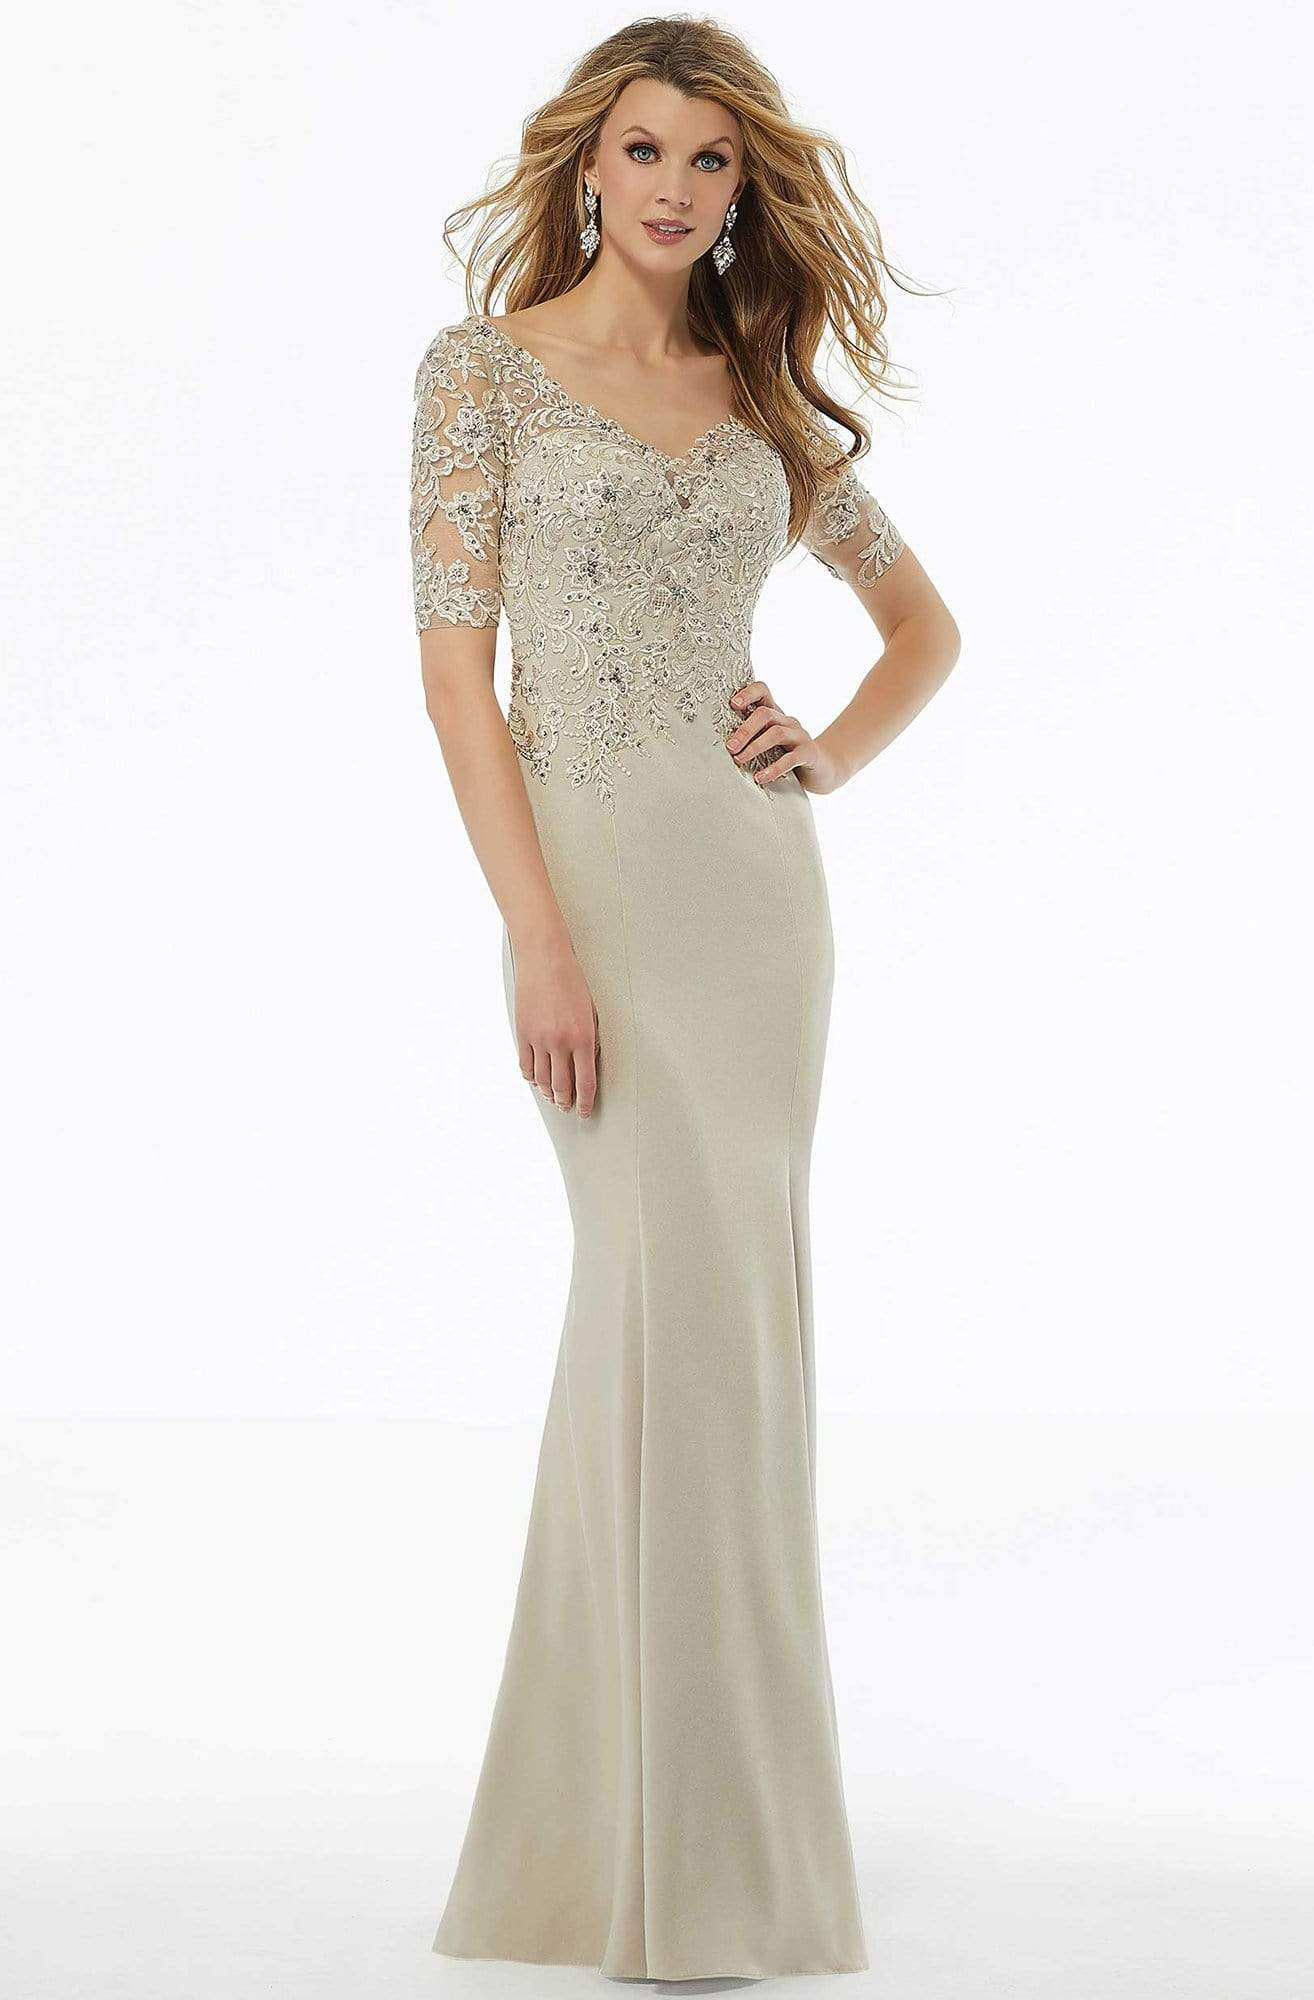 MGNY By Mori Lee - 72108 Beaded Lace Crepe Sheath Dress Mother of the Bride Dresses 2 / Champagne